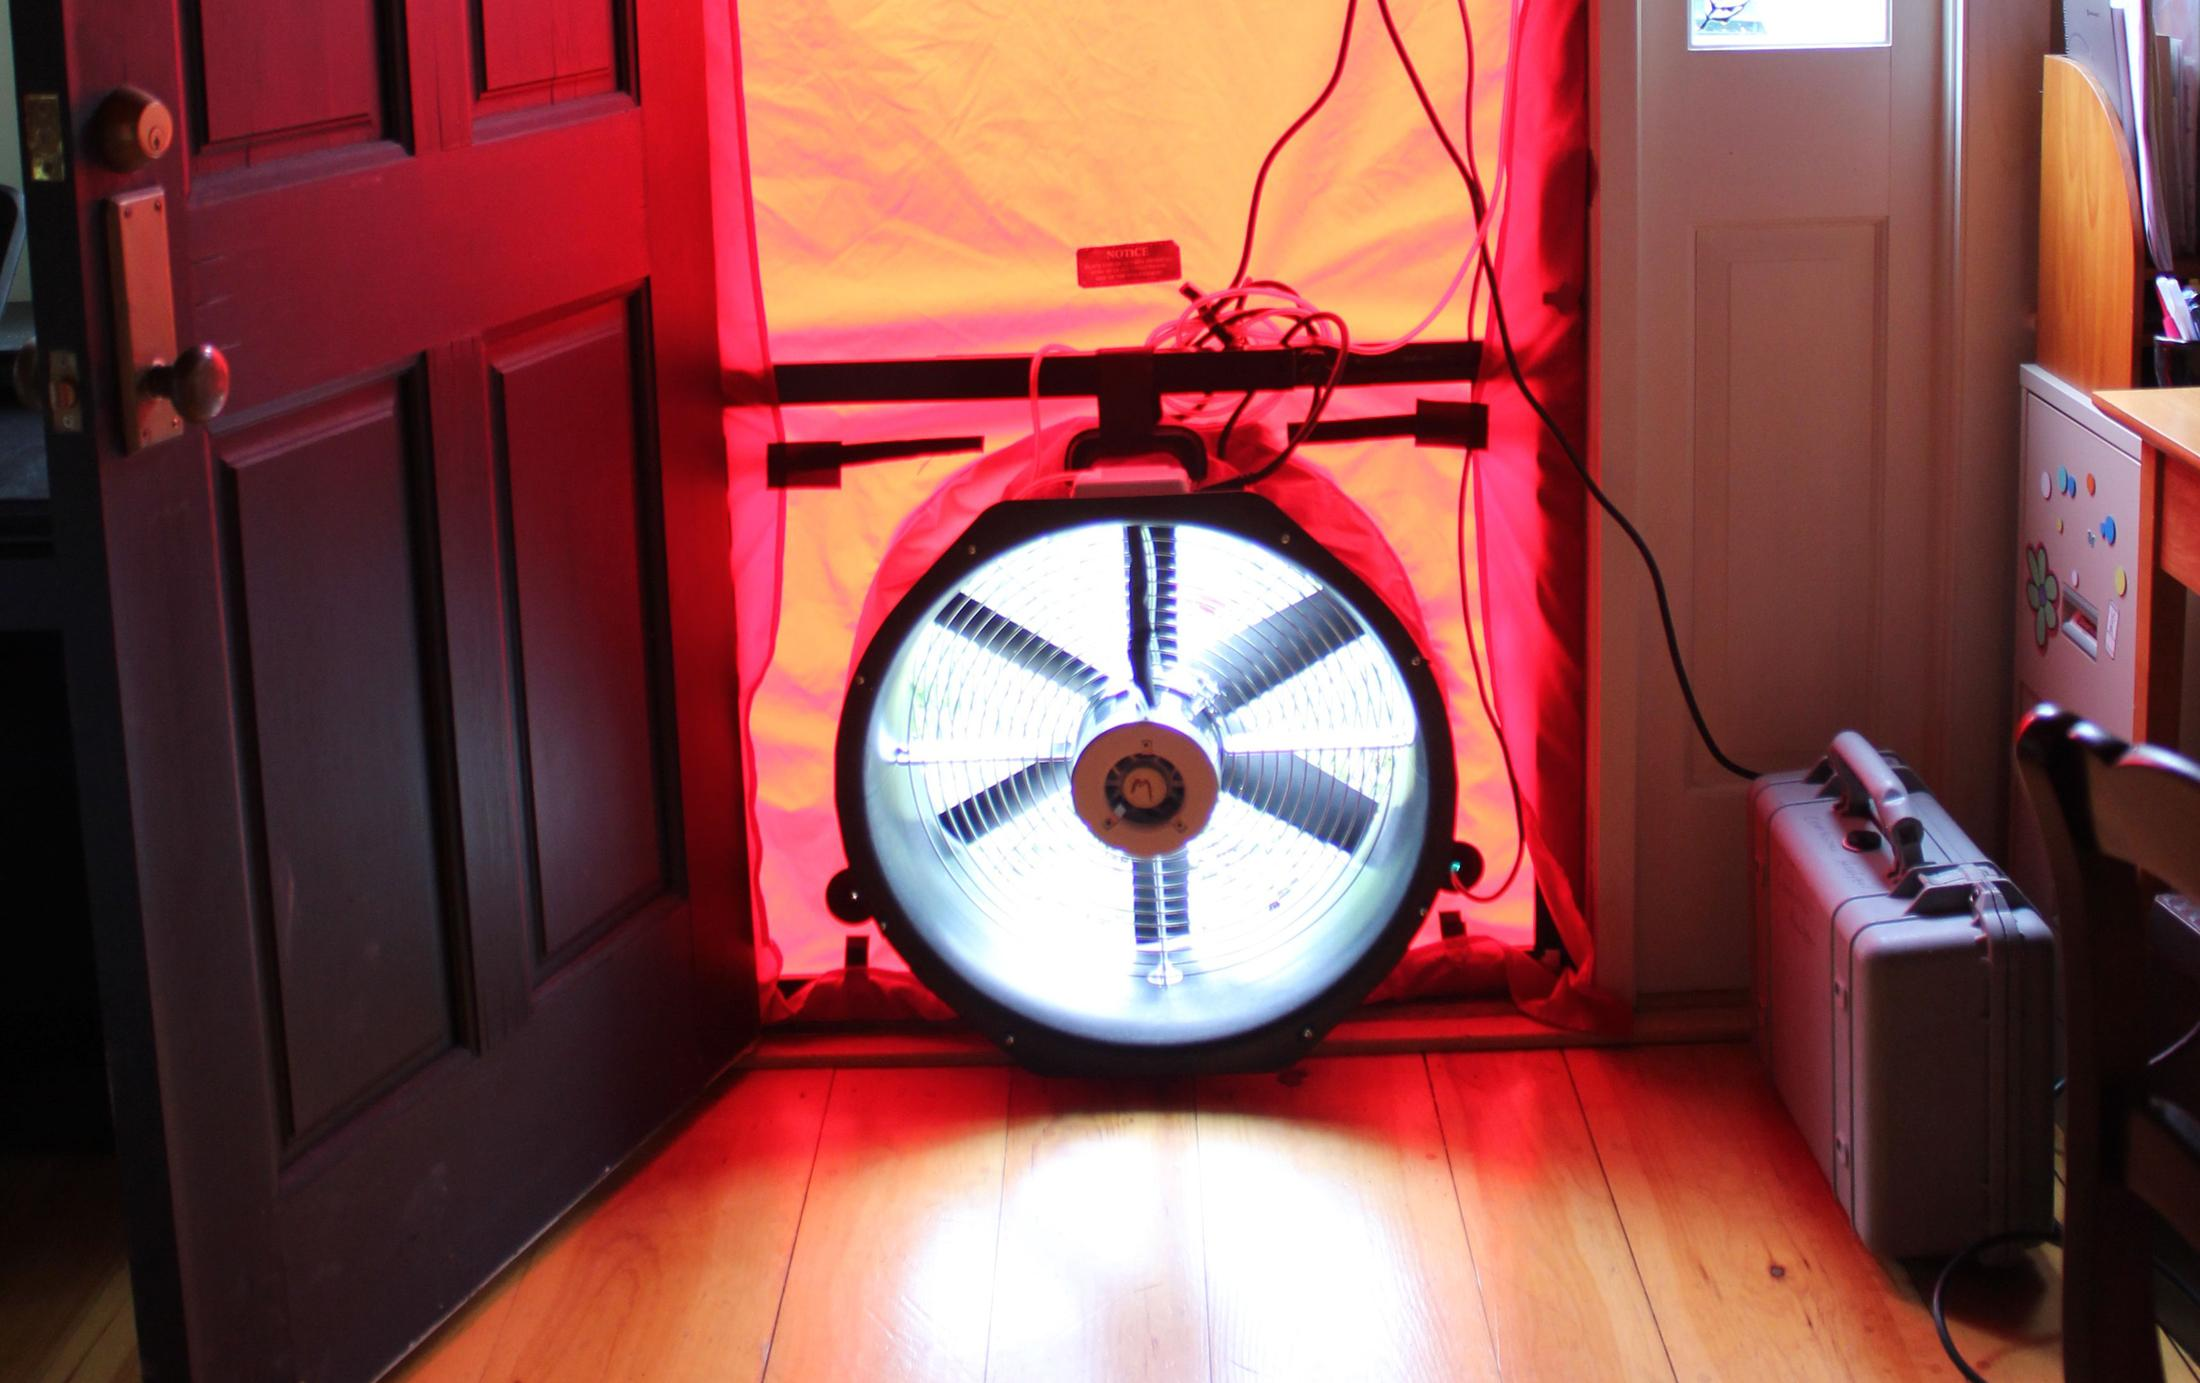 Blower Door with Fan Running